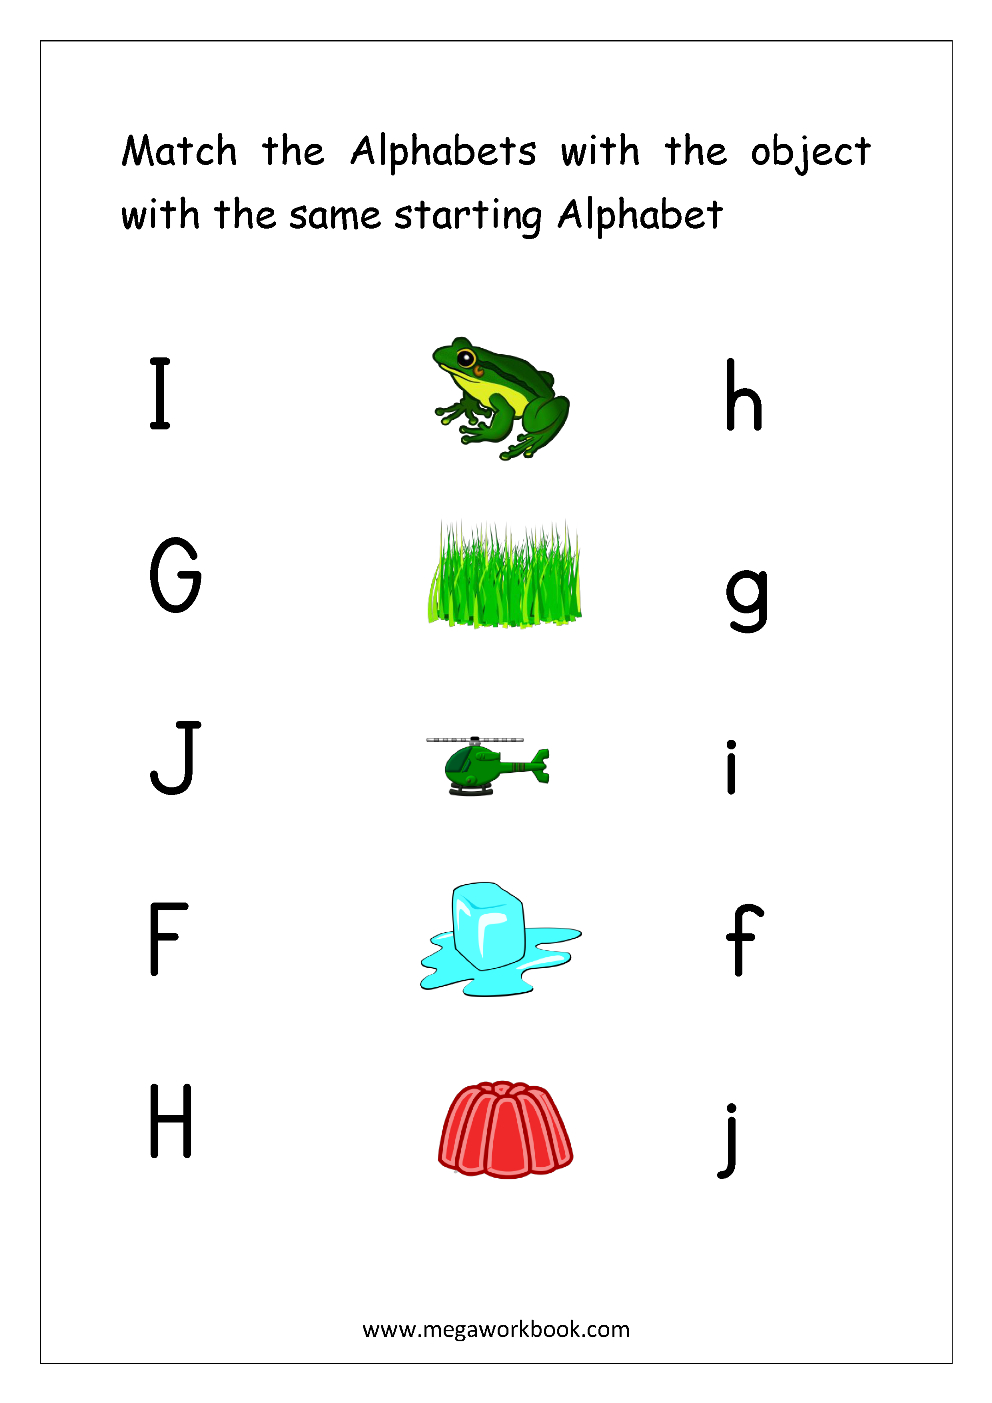 Free English Worksheets - Alphabet Matching - Megaworkbook inside Alphabet Matching Worksheets For Kindergarten Pdf